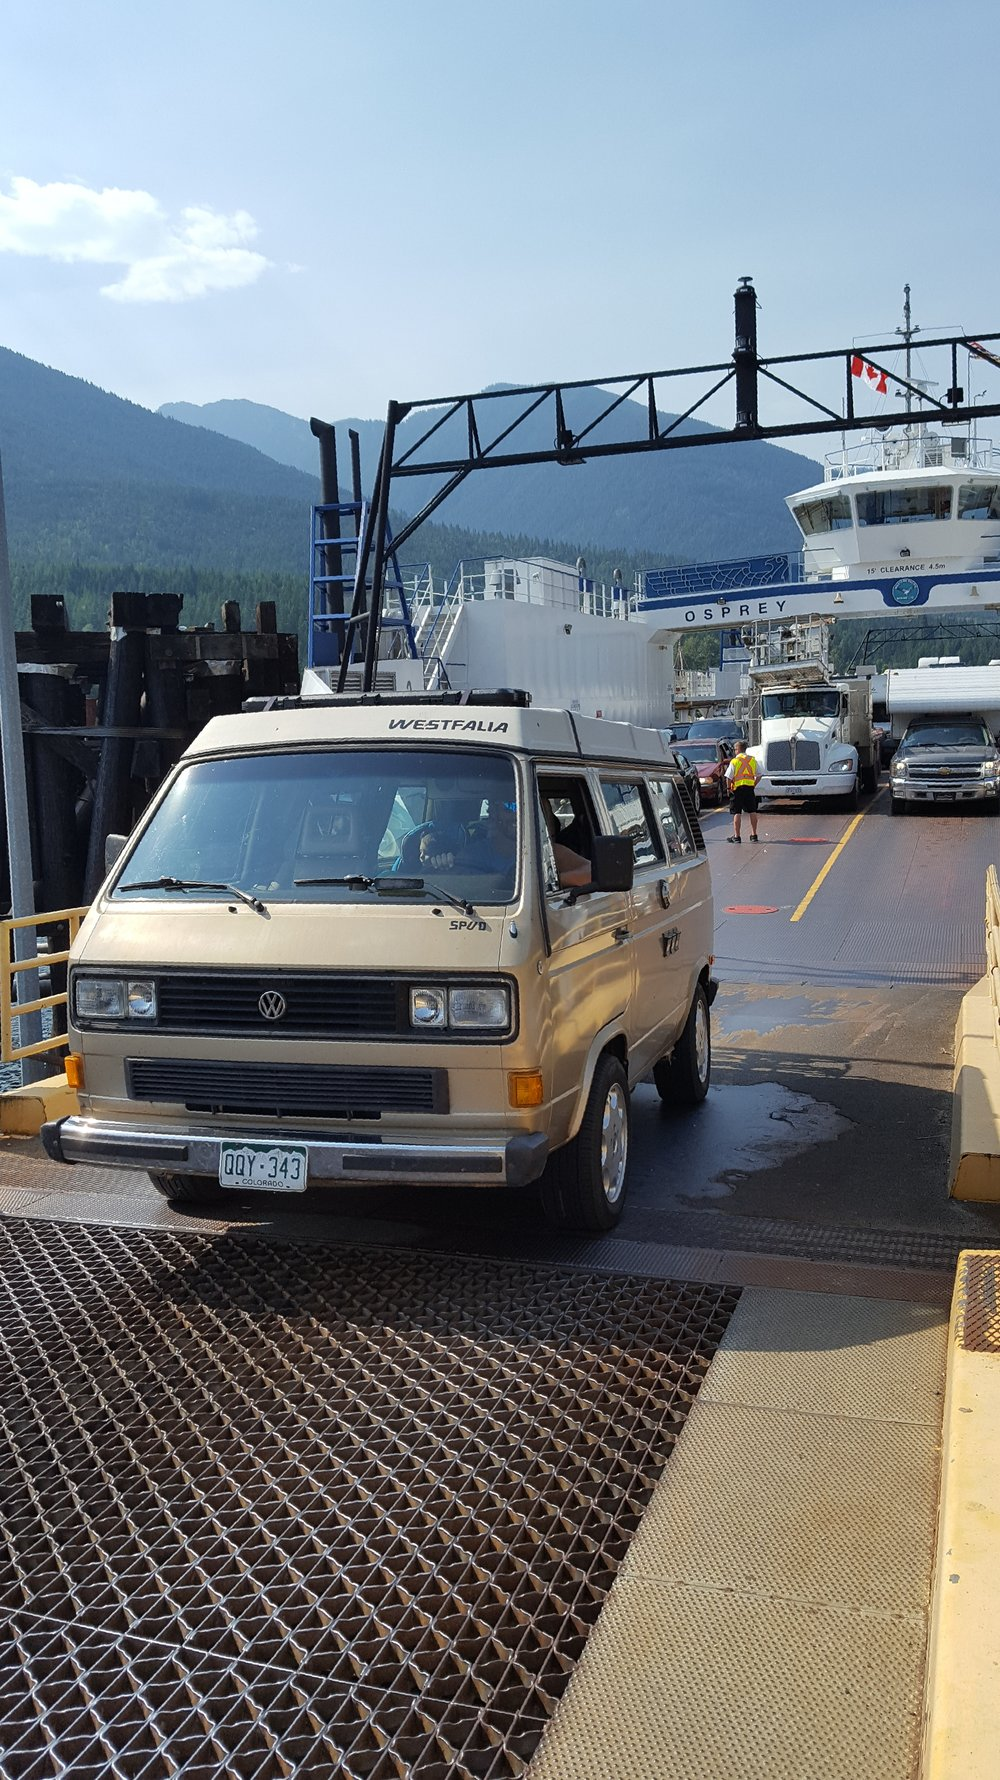 You can ride this ferry with your car (or camper) FOR FREE.  Um, yes.